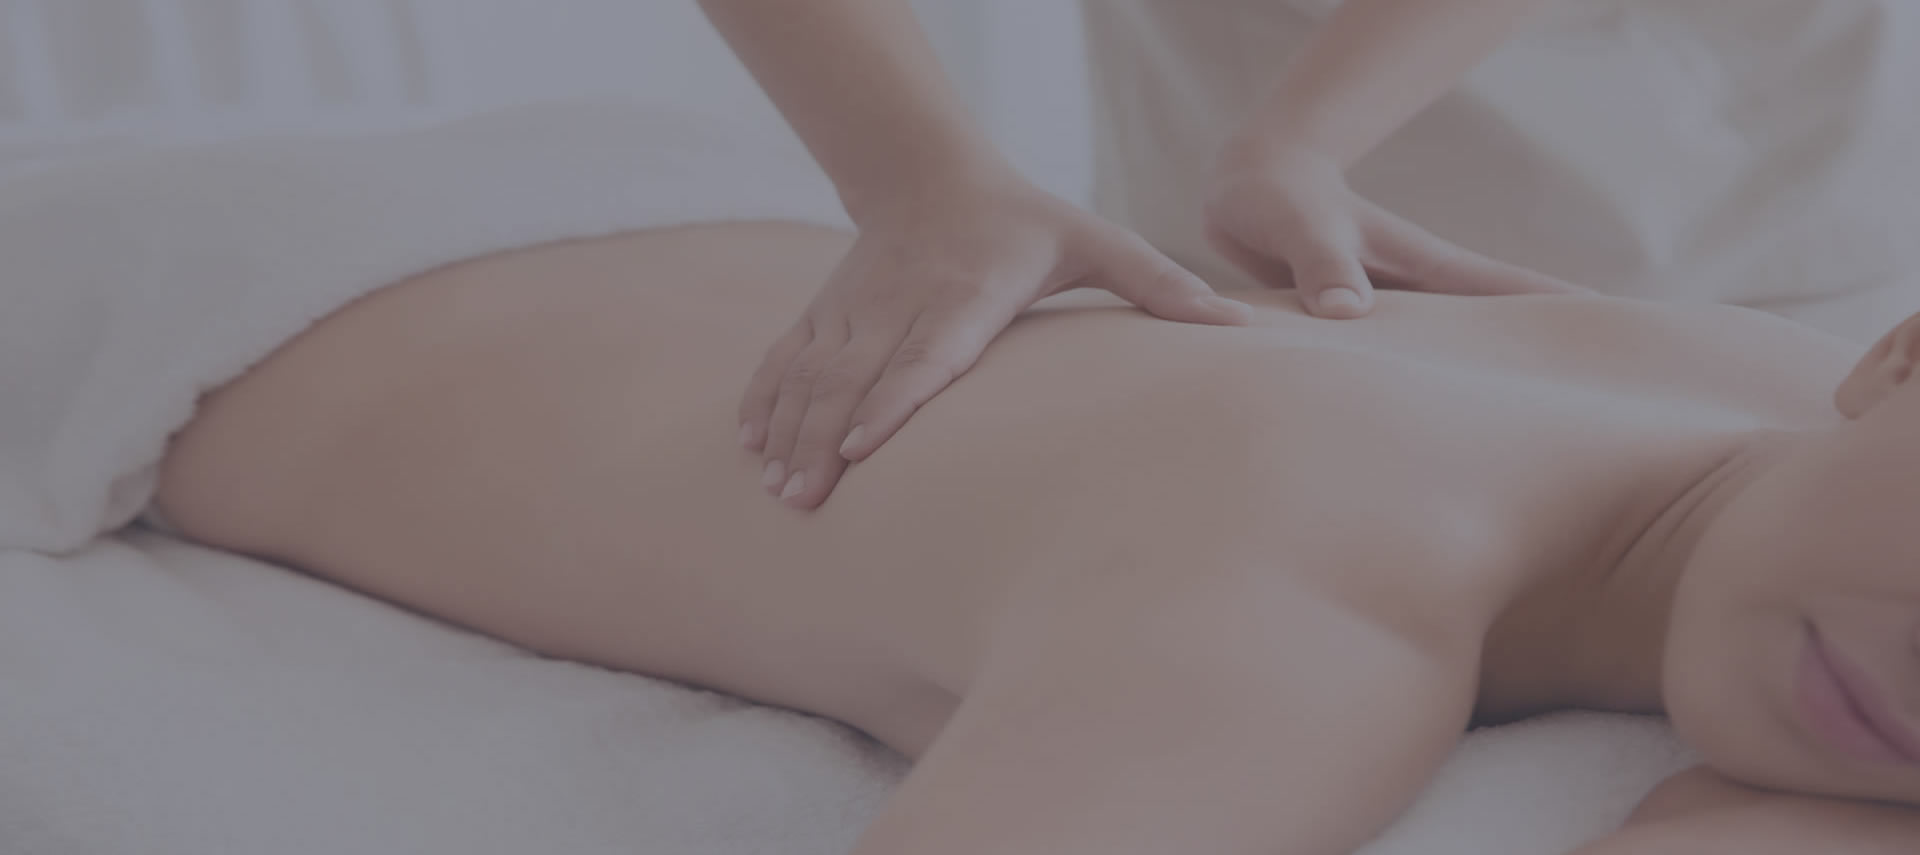 The Holistic Approach Massage